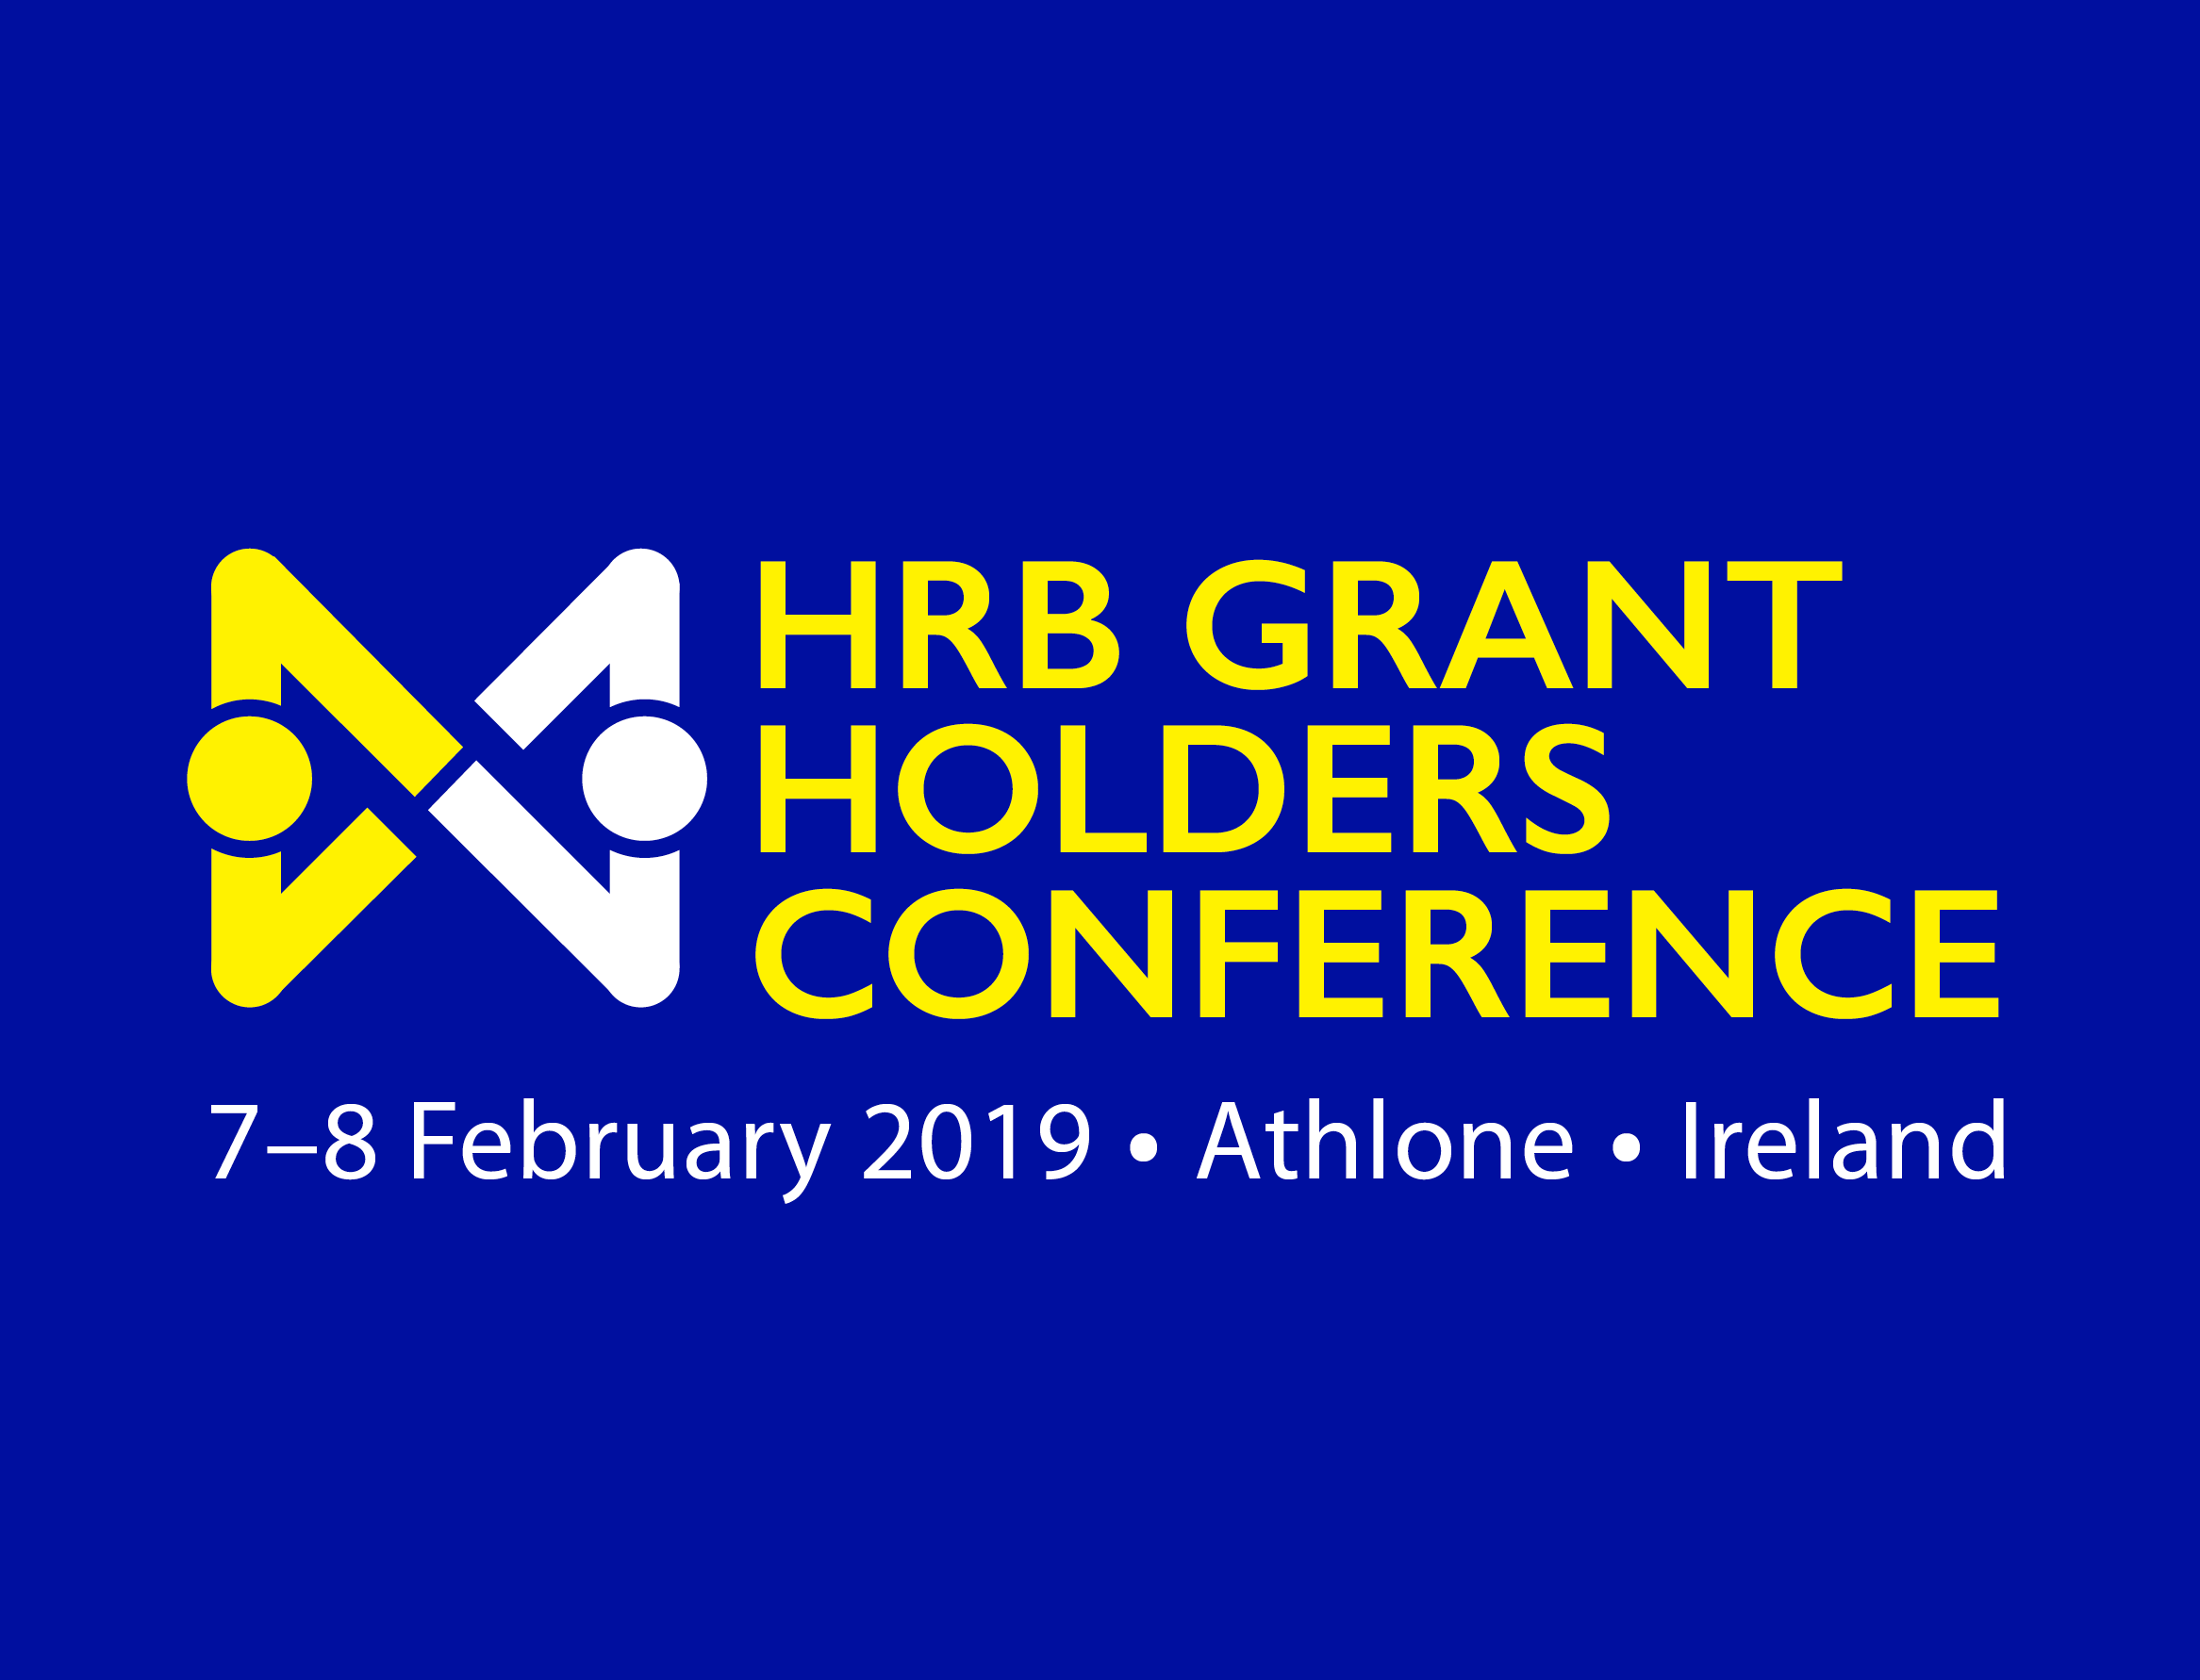 HRB Grant Holders Conference 2019